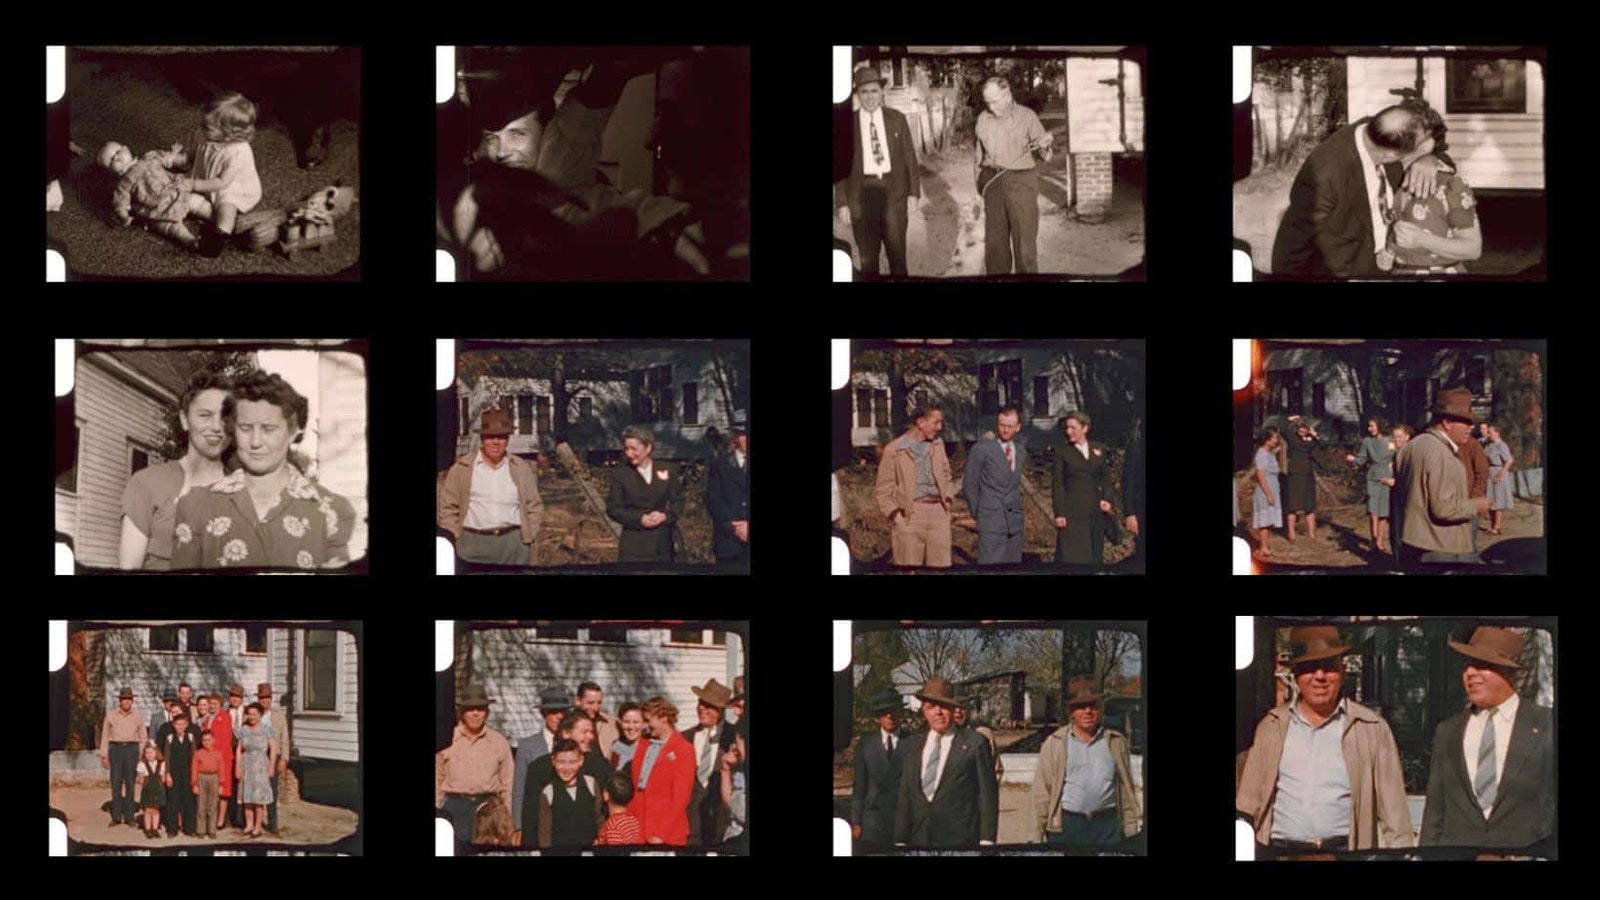 A contact sheet featuring photos of various white people.